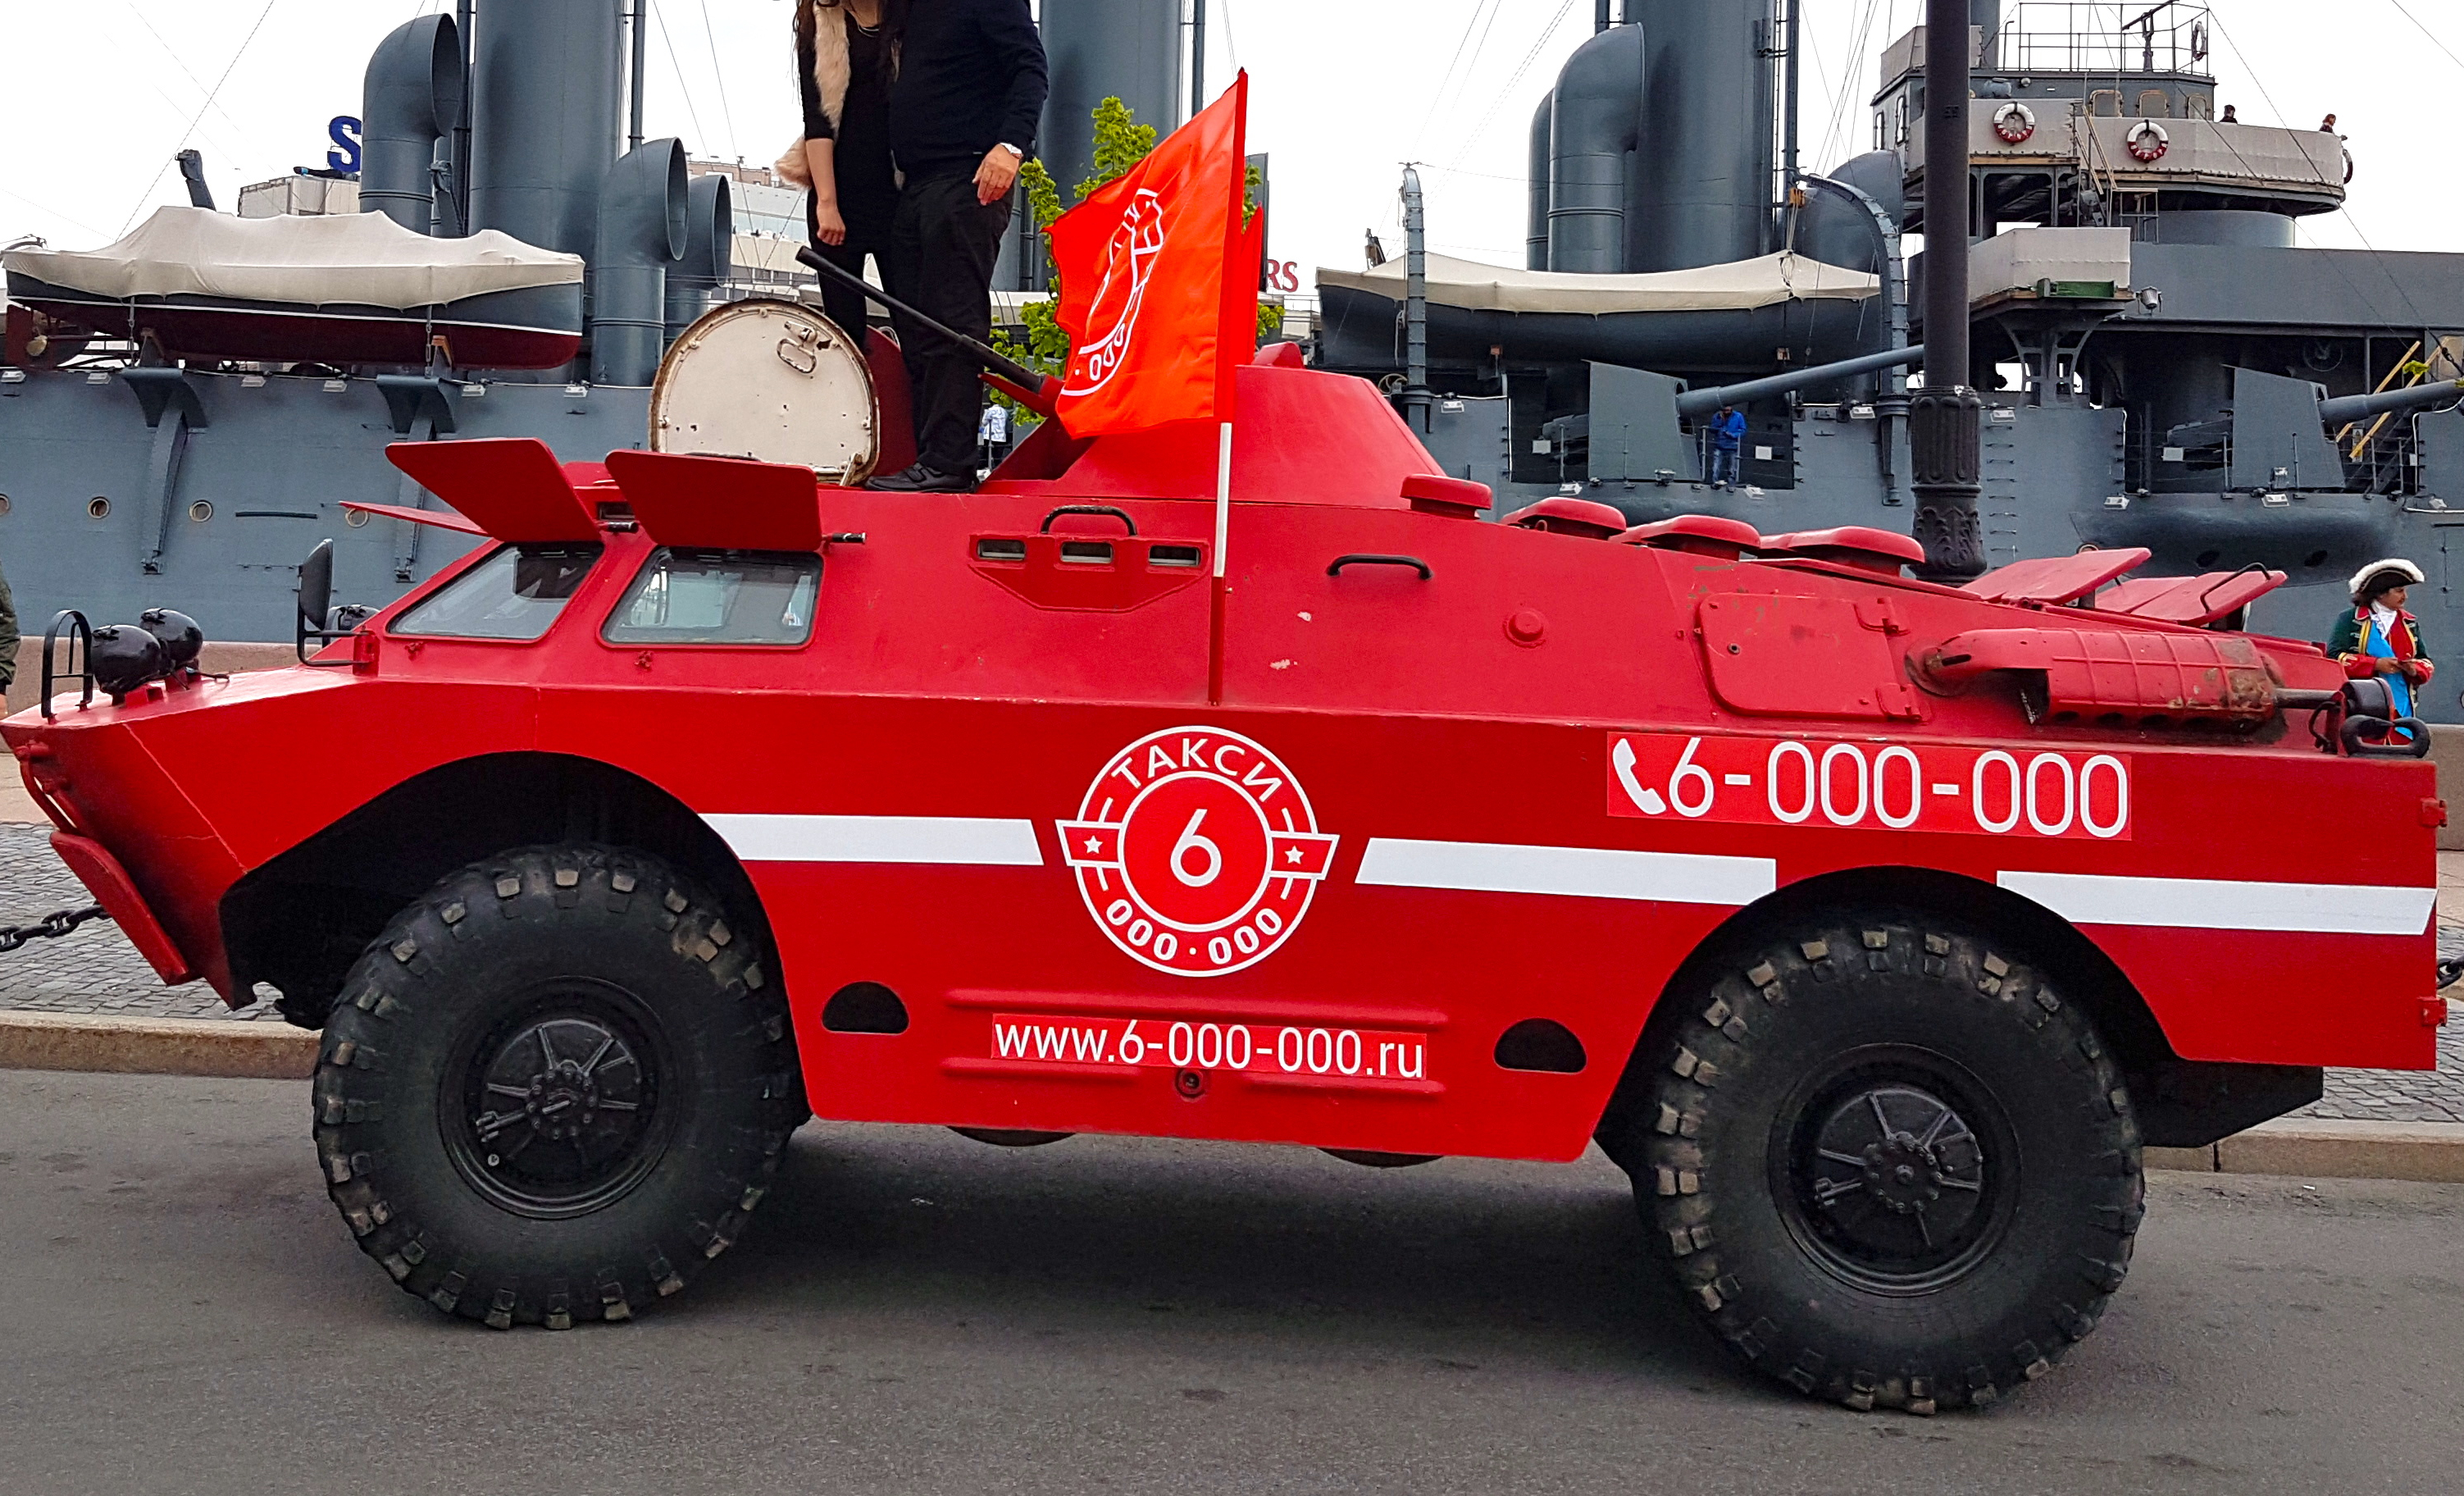 Red tank taxi in Russia